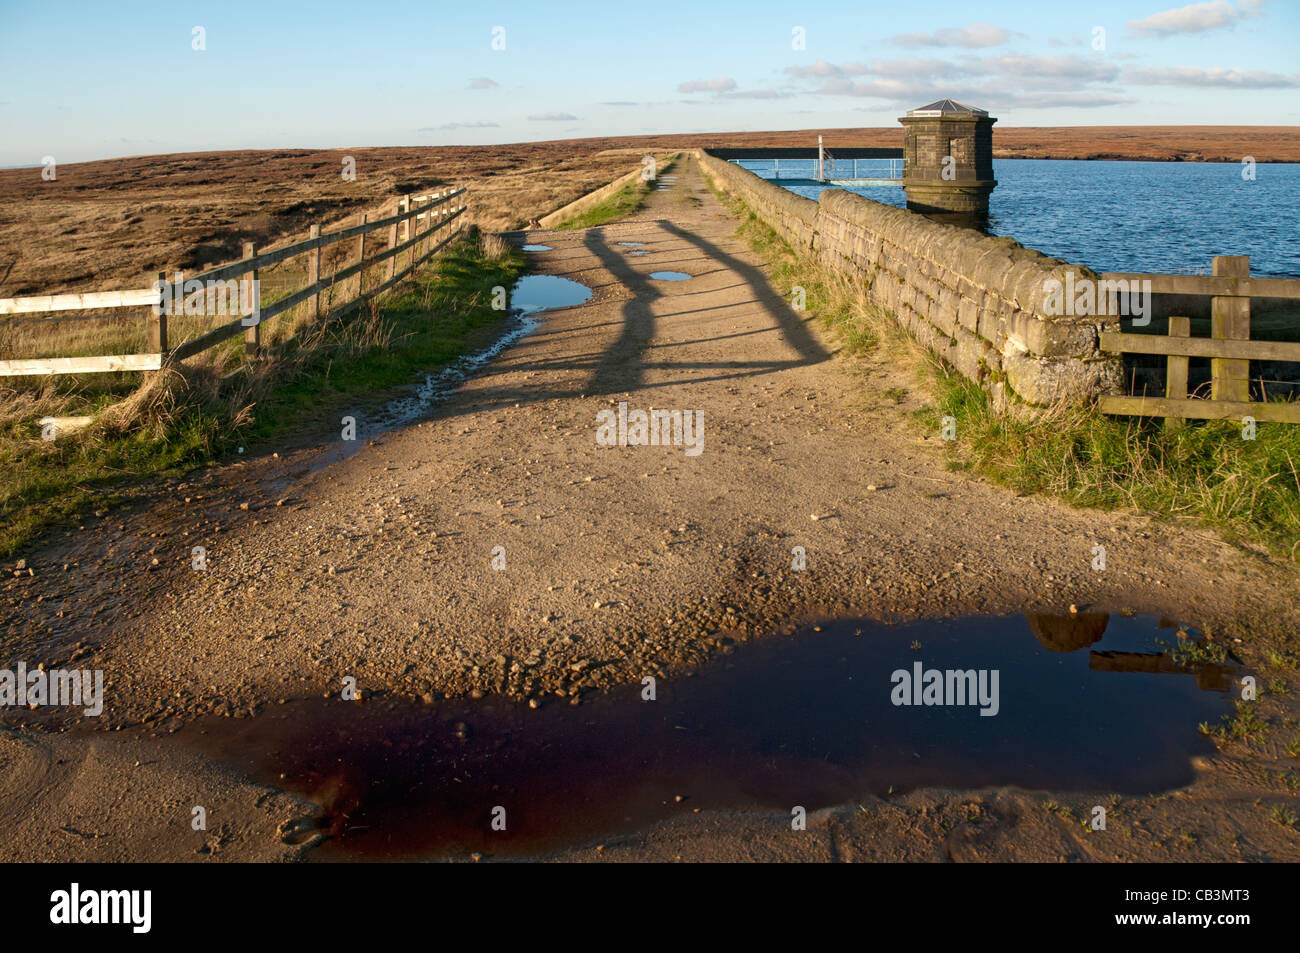 Chew reservoir and dam, Saddleworth, Oldham district, Greater Manchester, England, UK - Stock Image